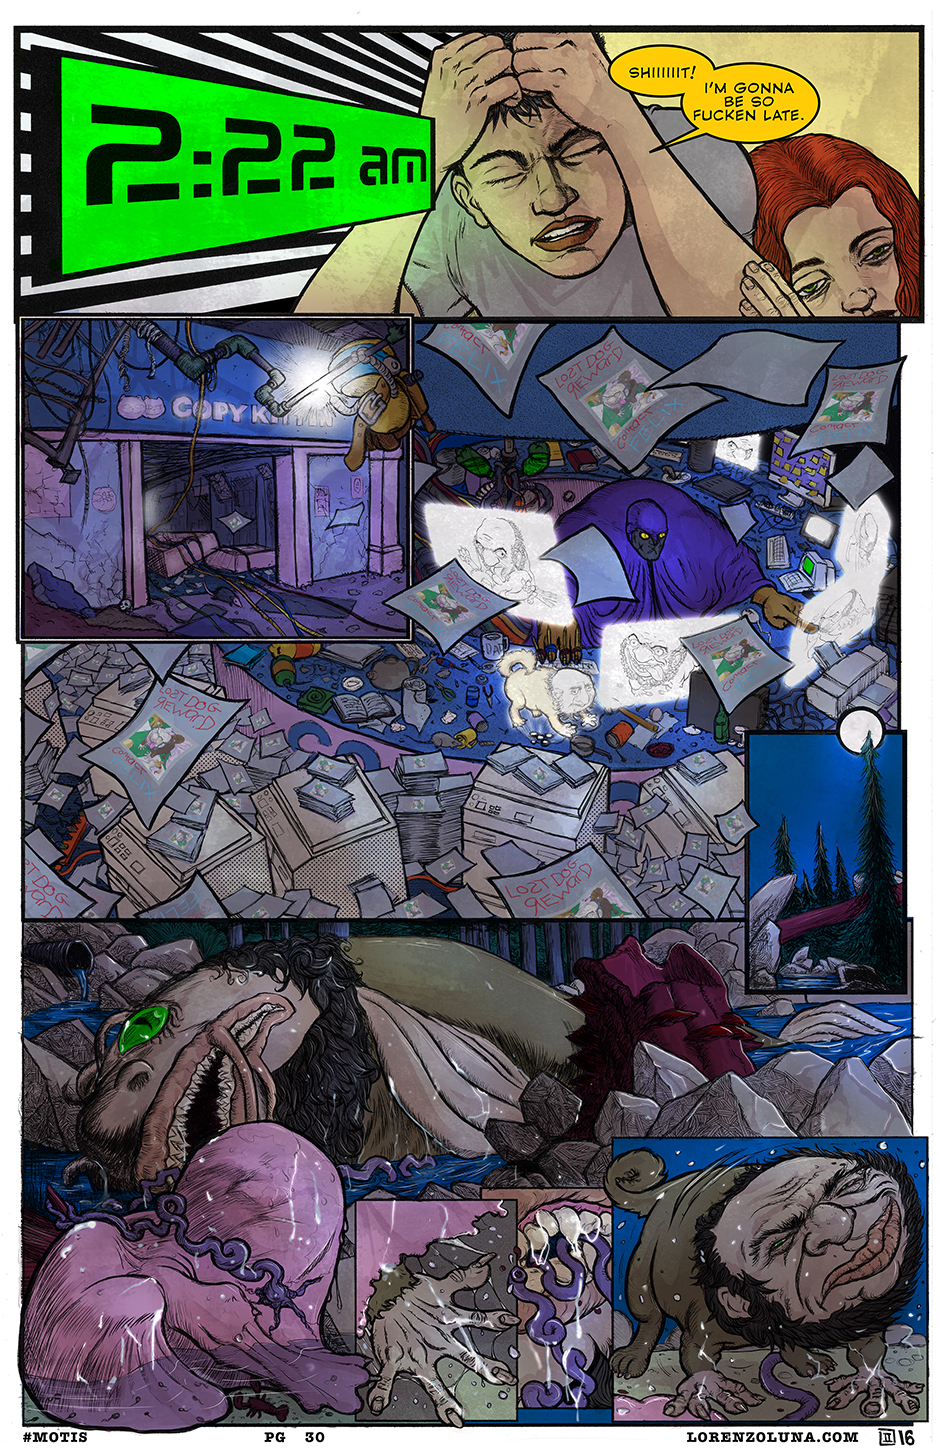 the maze page 30